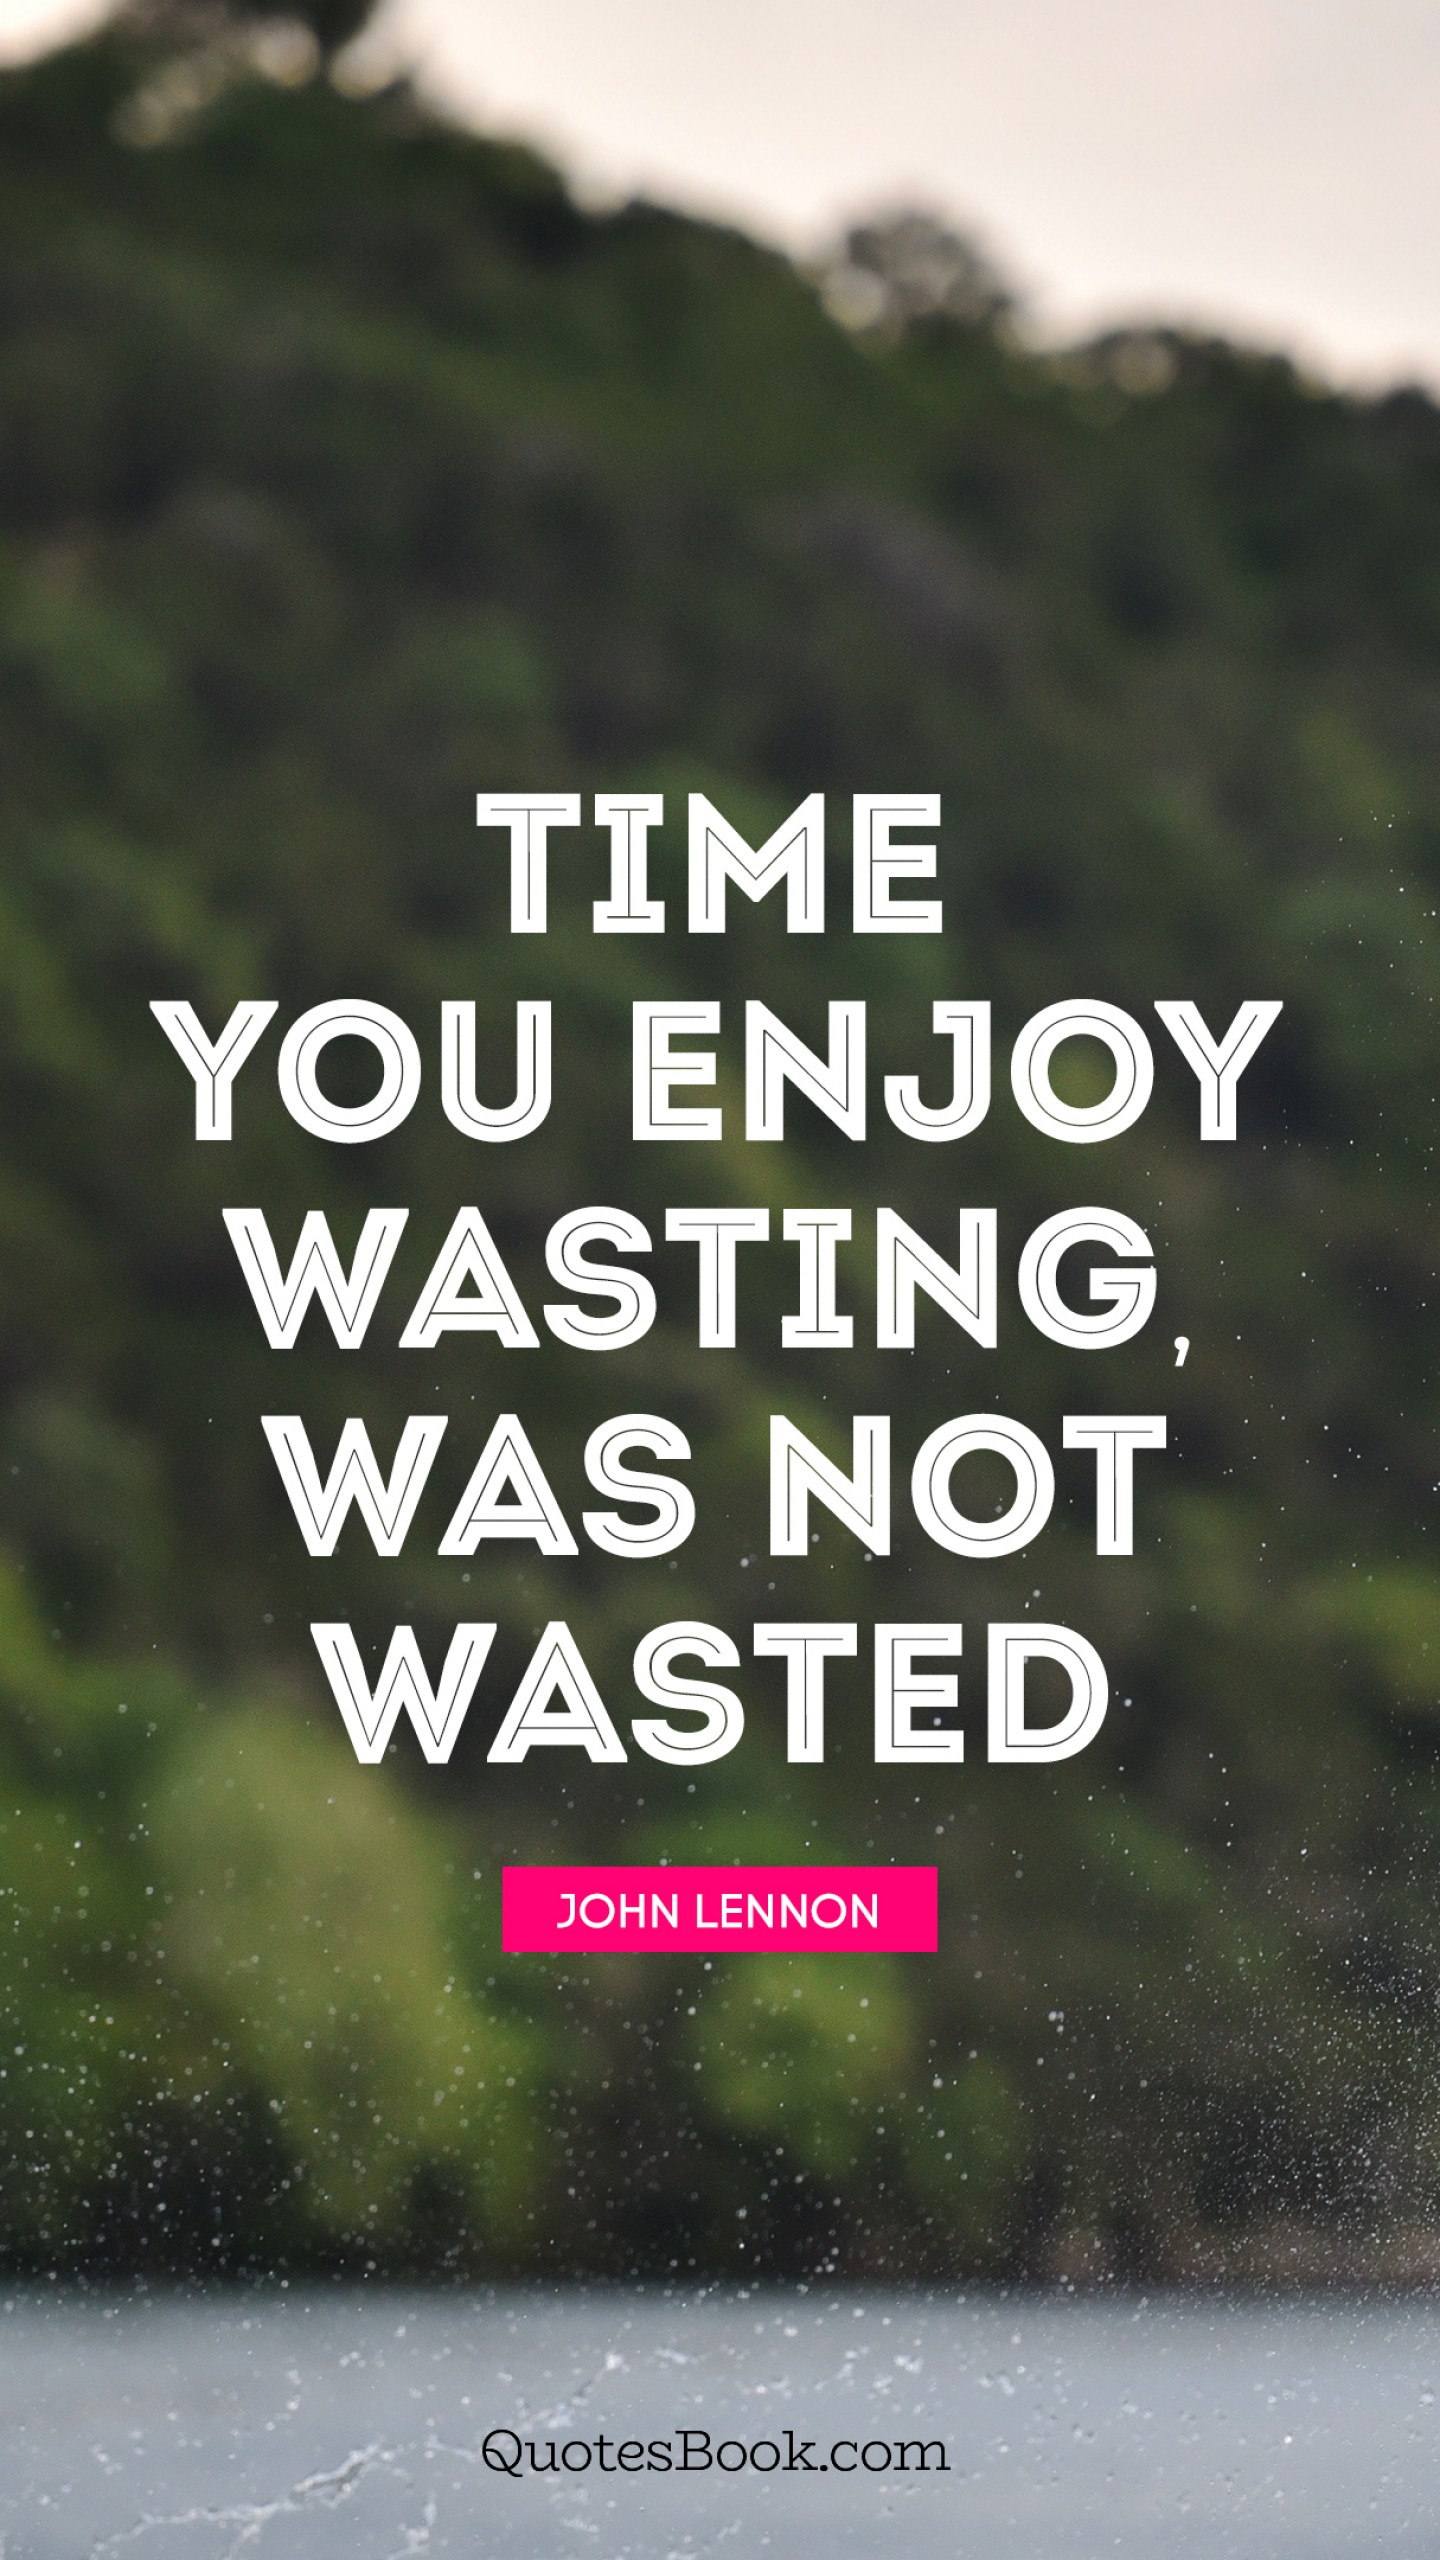 Time You Enjoy Wasting Was Not Wasted Quote By John Lennon Quotesbook